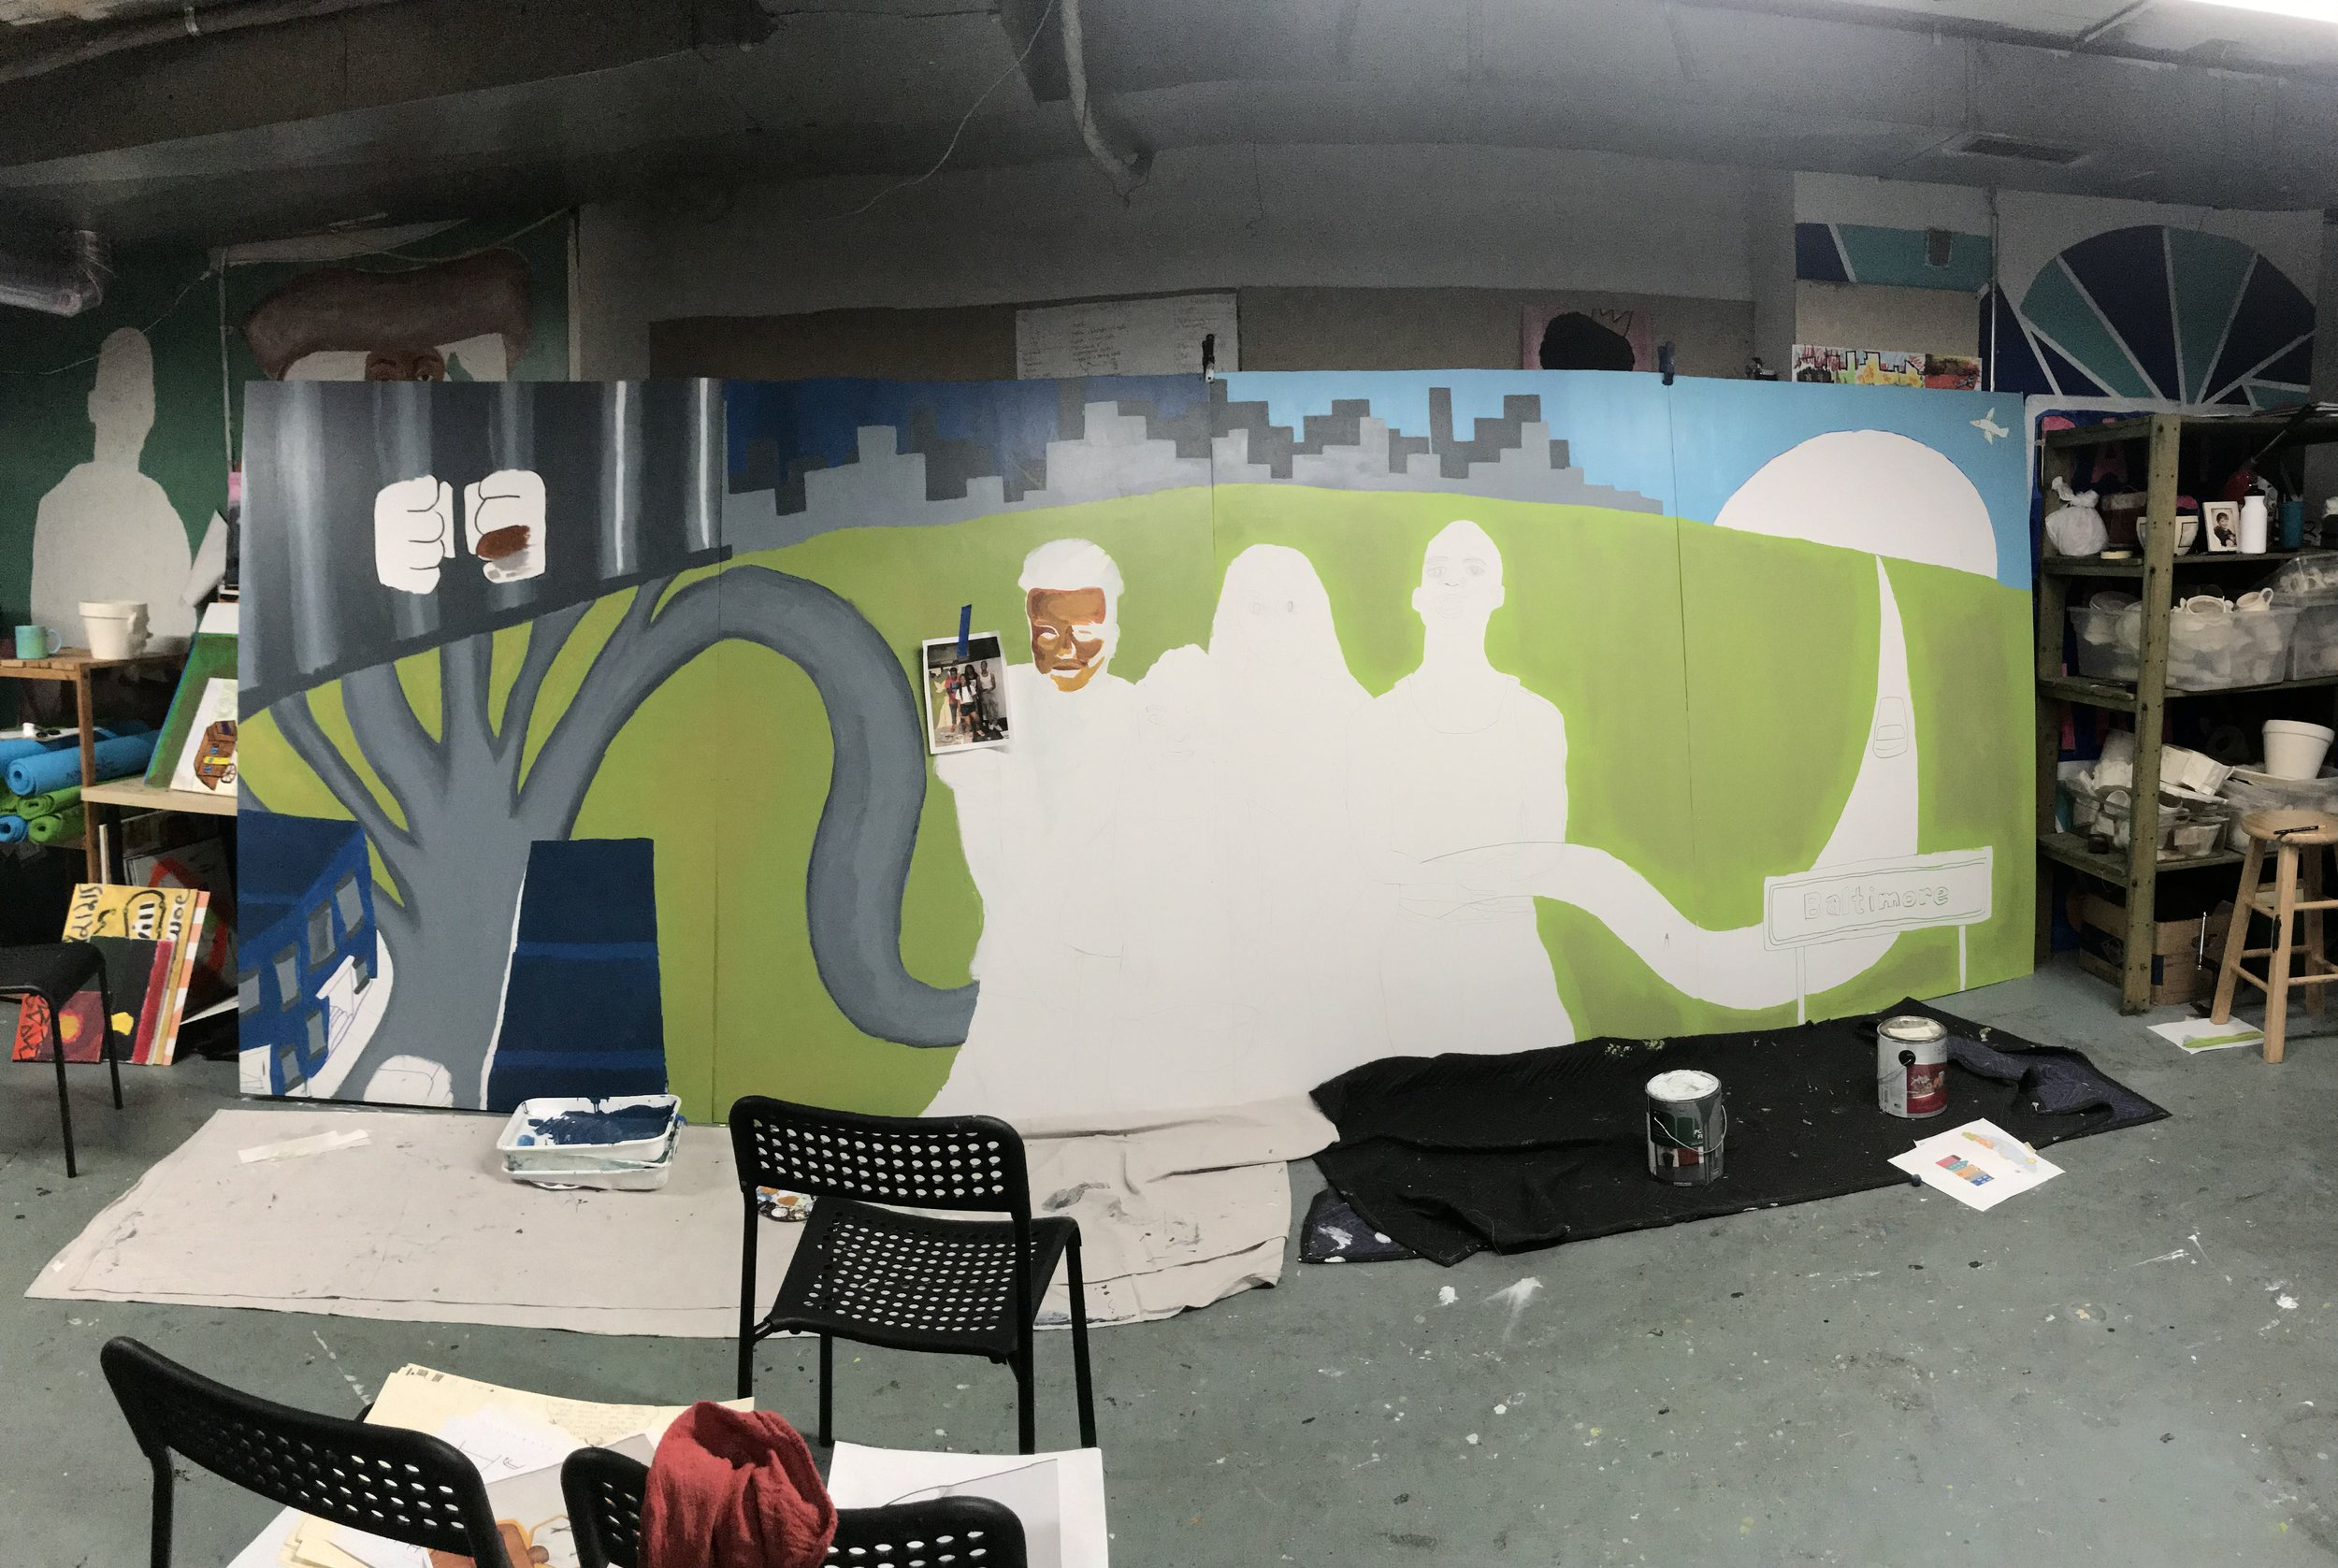 Progress on our mural for the Office of the Public Defender!